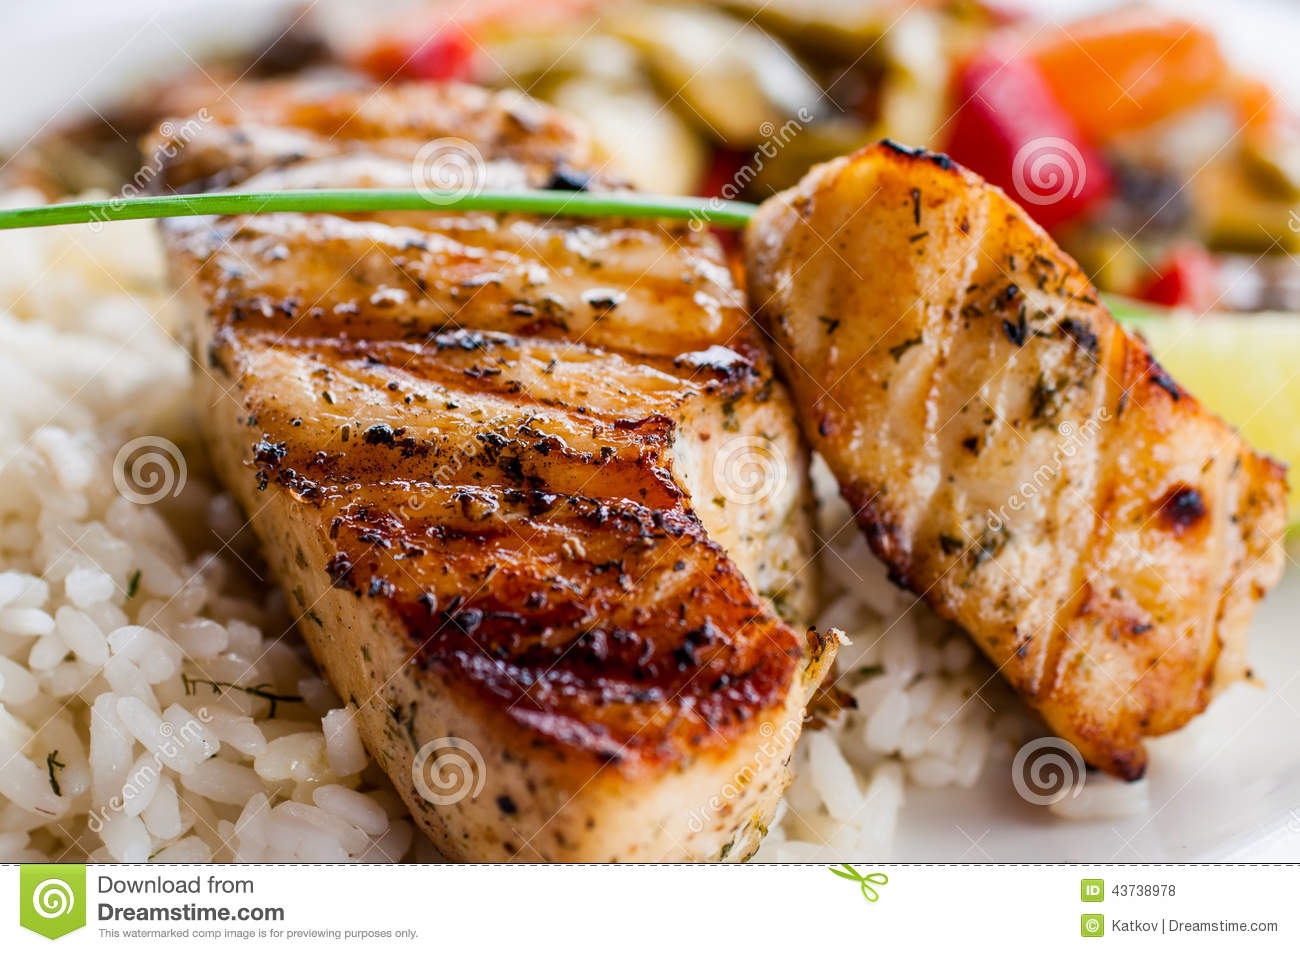 Fried fish with rice and vegetables stock photo image for Baked fish and rice